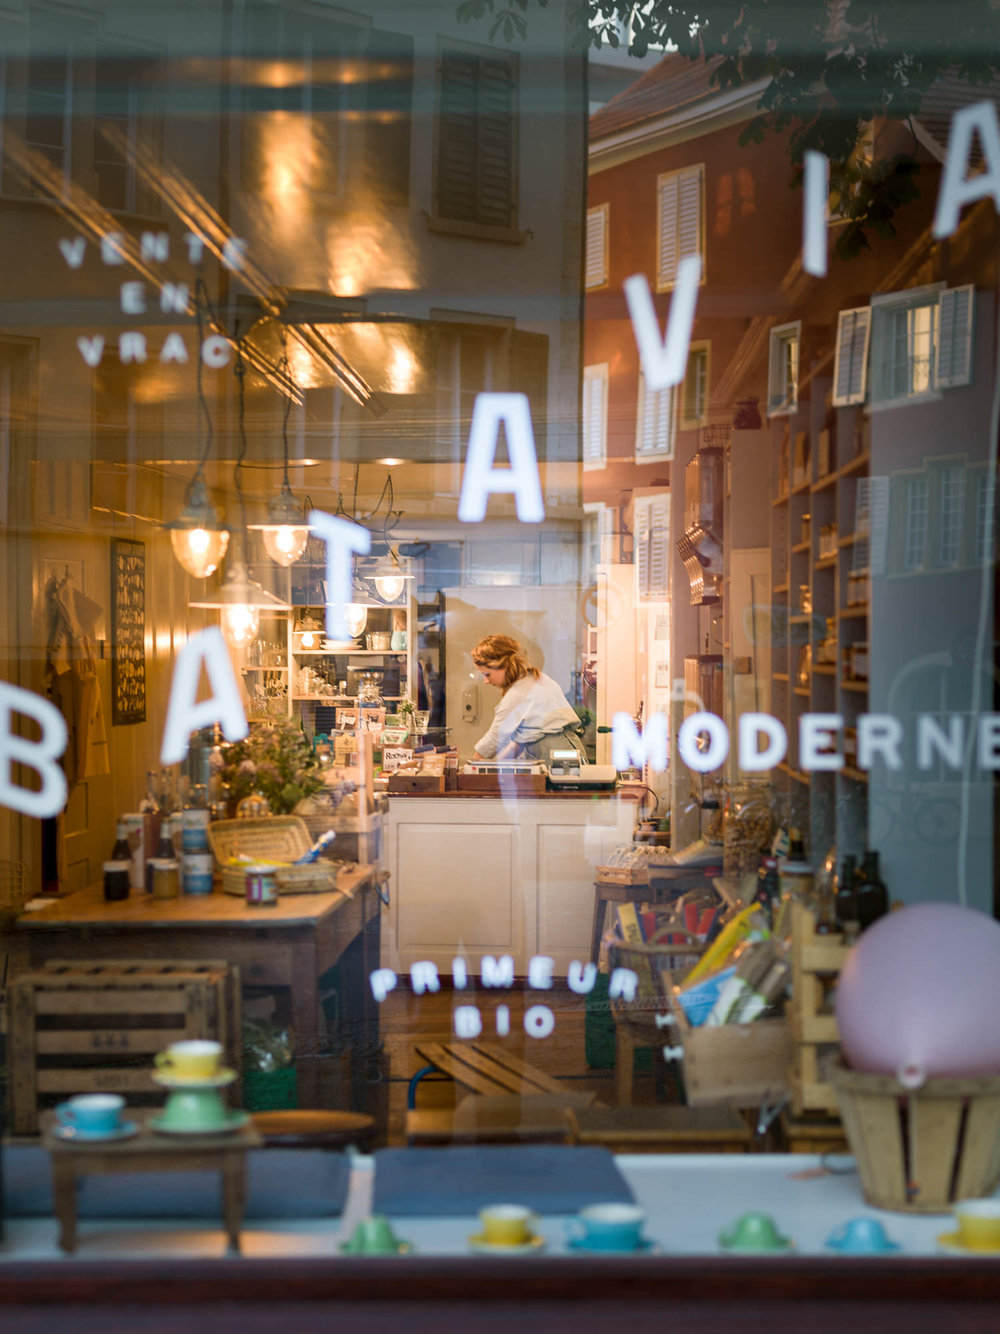 - Epicérie BataviaThe specialty shop is representative of a new generation of small shops that are experiencing a renaissance in the old town of Biel. Led by Cyndie and Raphaël with love, they offer only local goods from producers they know personally. I accompanied them for a day ... and fell in love with the Shop. A free work, so far unpublished.